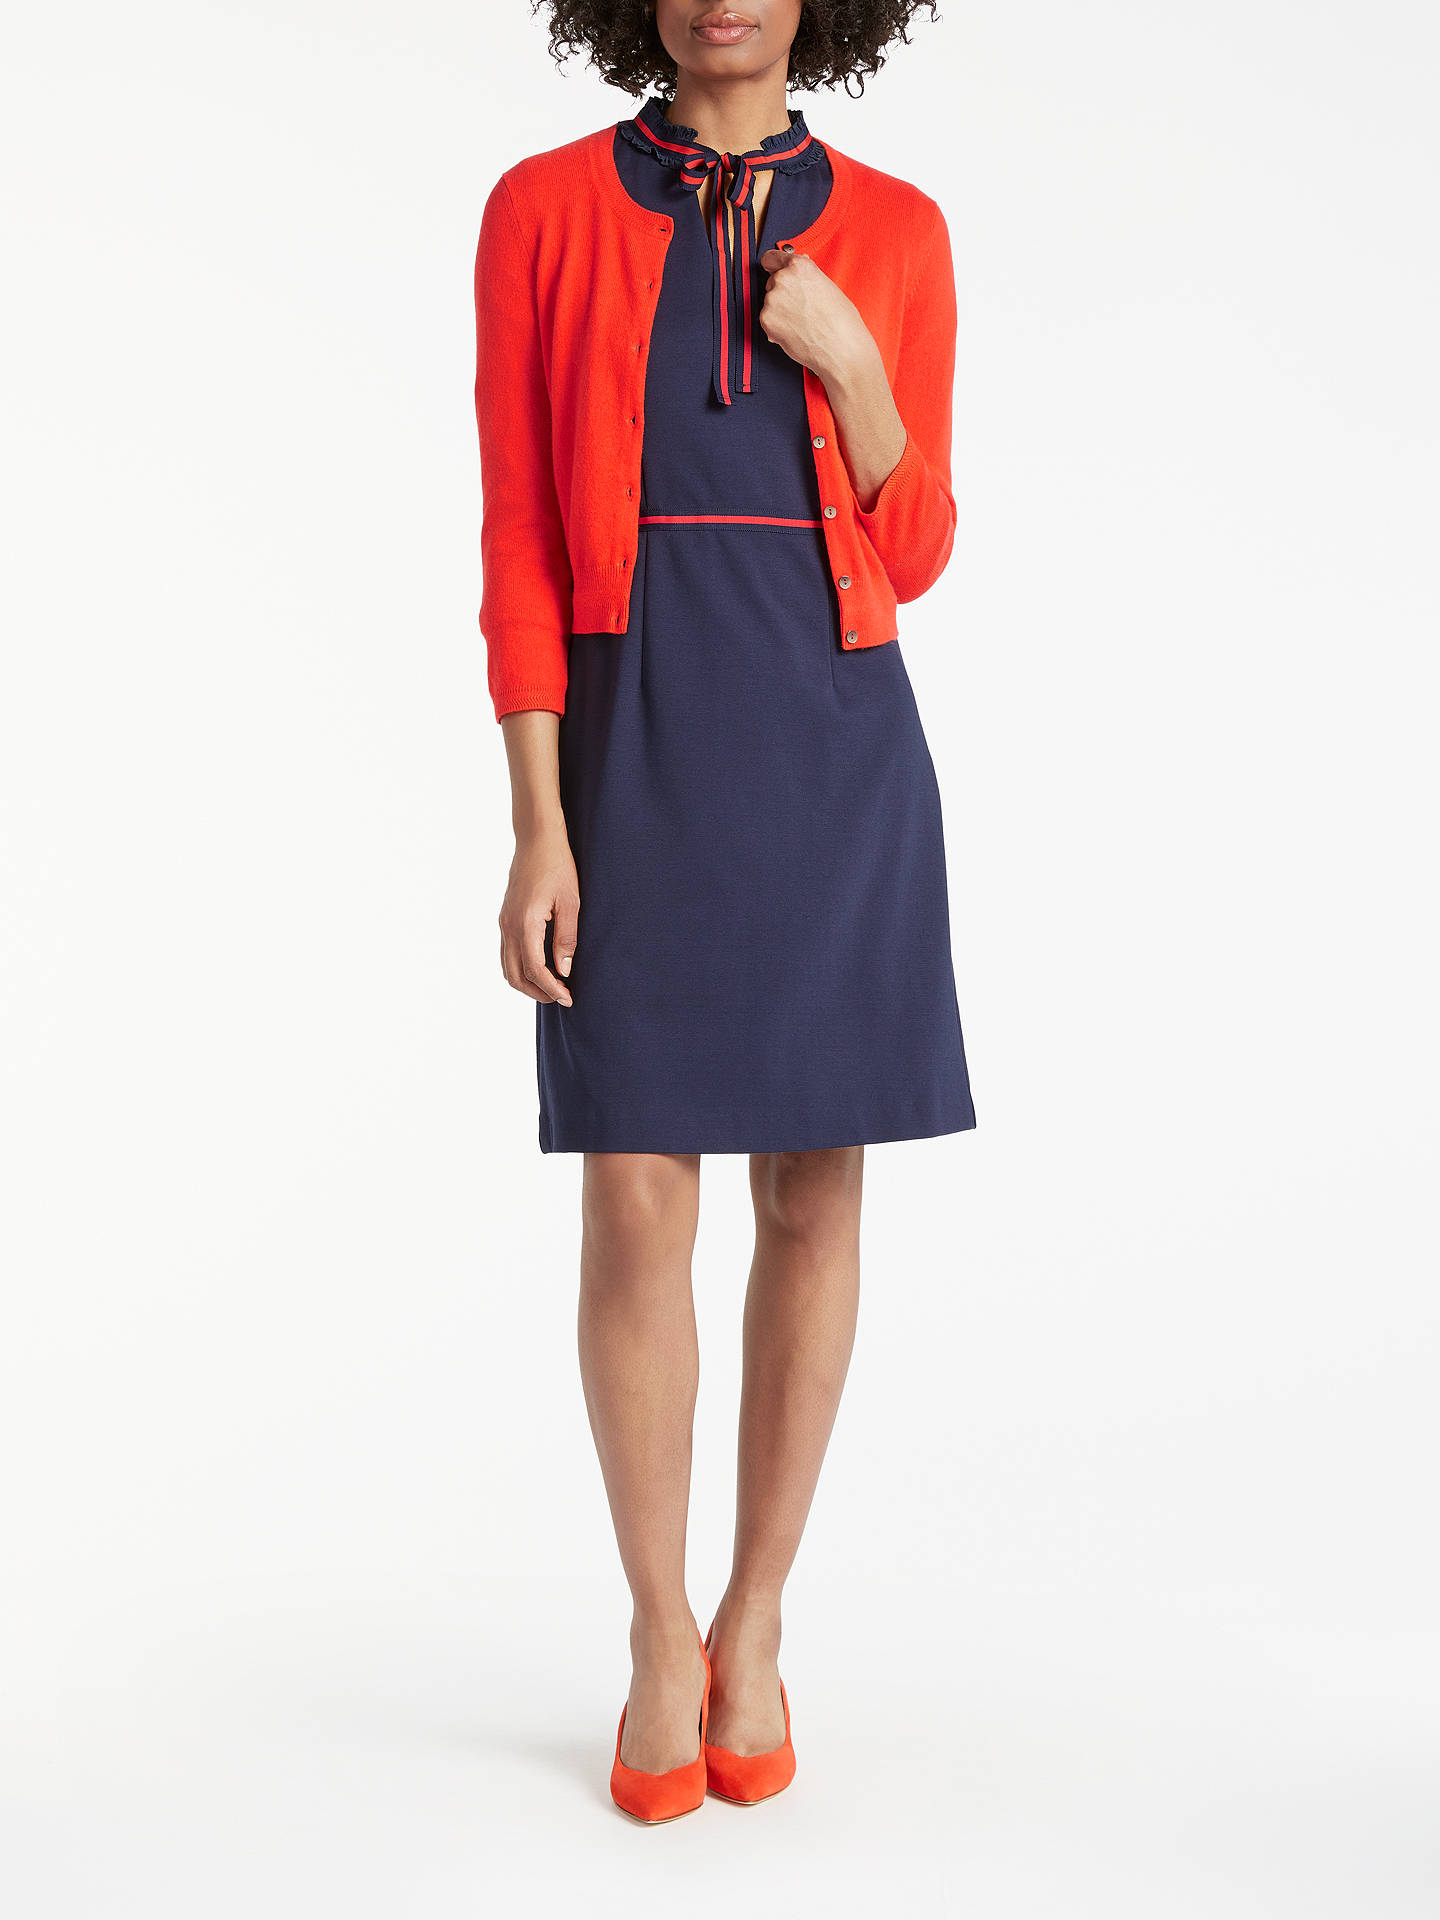 BuyBoden Cashmere Crop Crew Neck Cardigan, Red Pop, XS Online at johnlewis.com